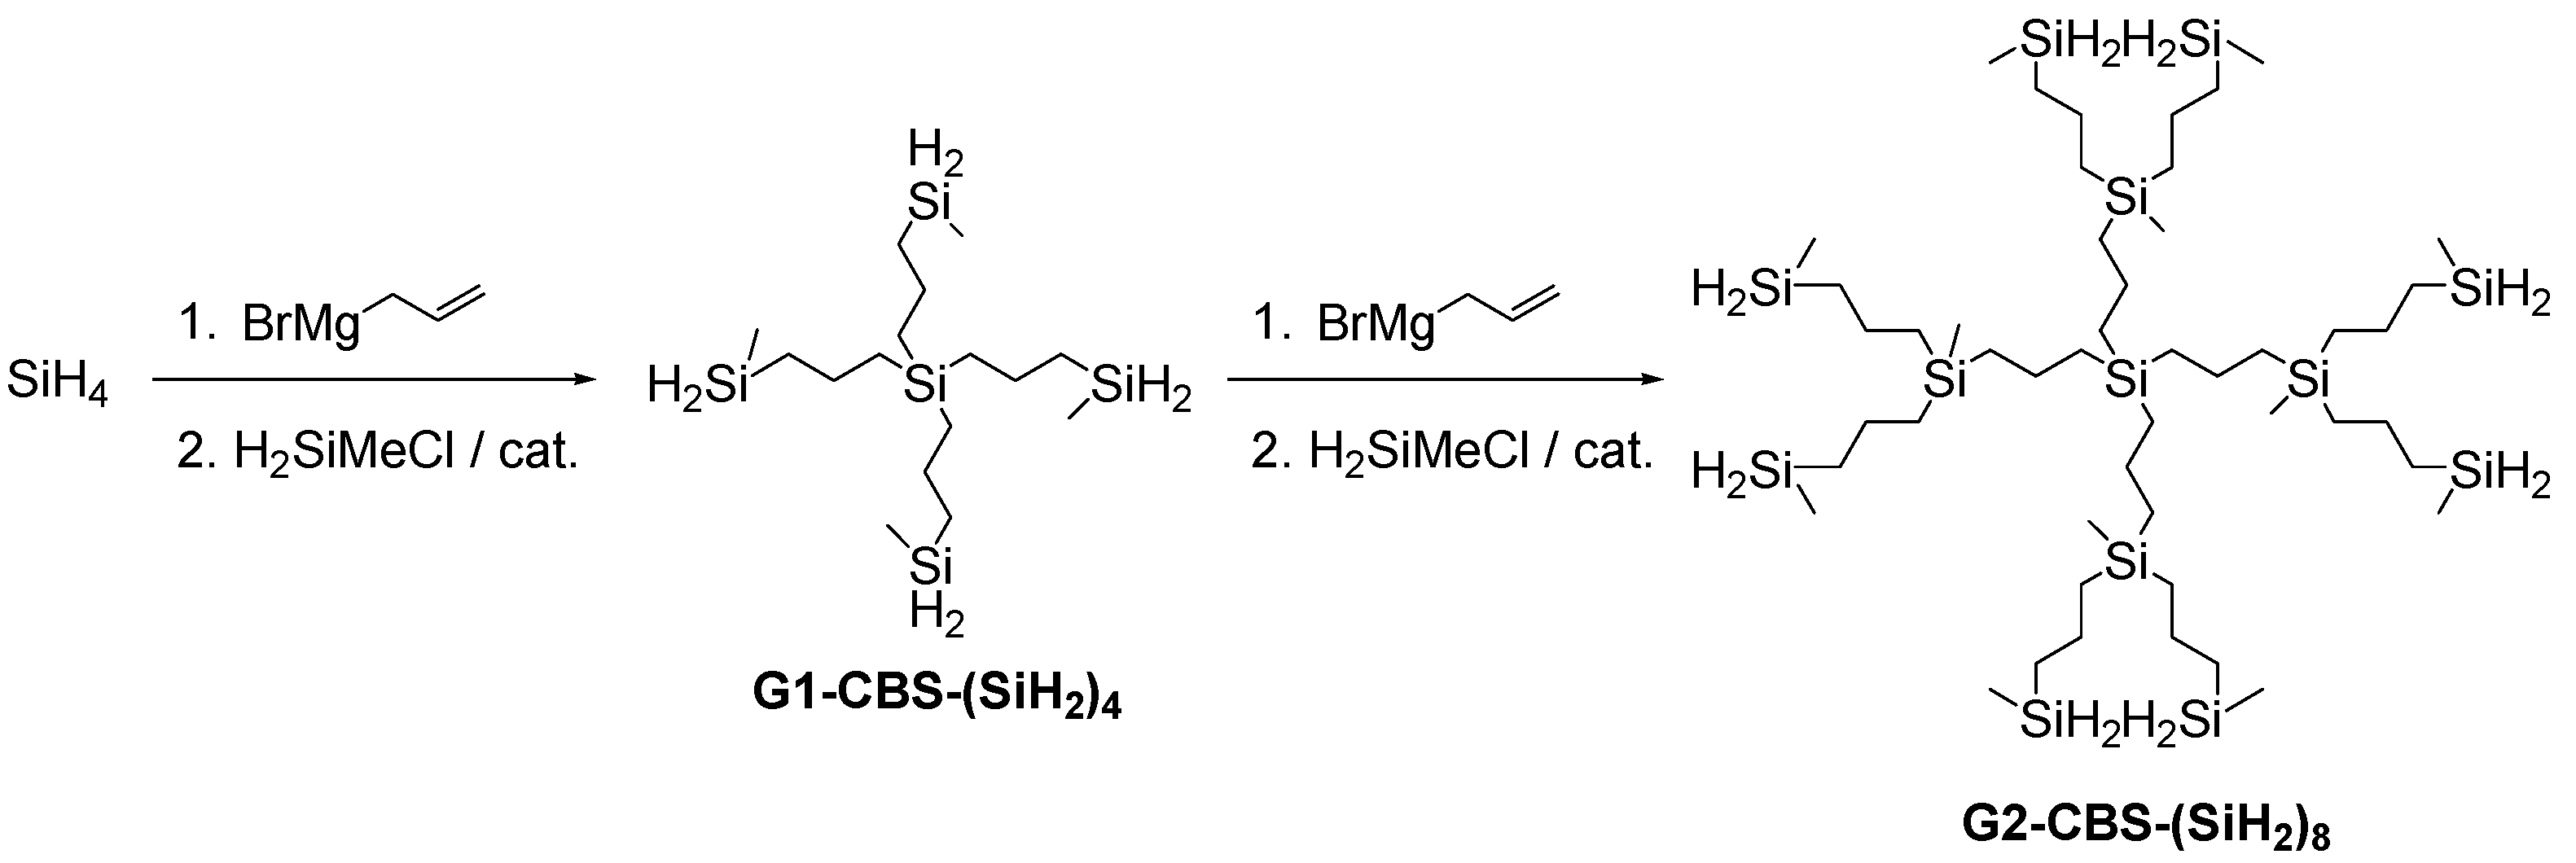 Molecules Free Full Text Function Oriented Molecular Design Charging Circuit Diagram For The 1940 49 Hudson All Models 22 01581 Sch002